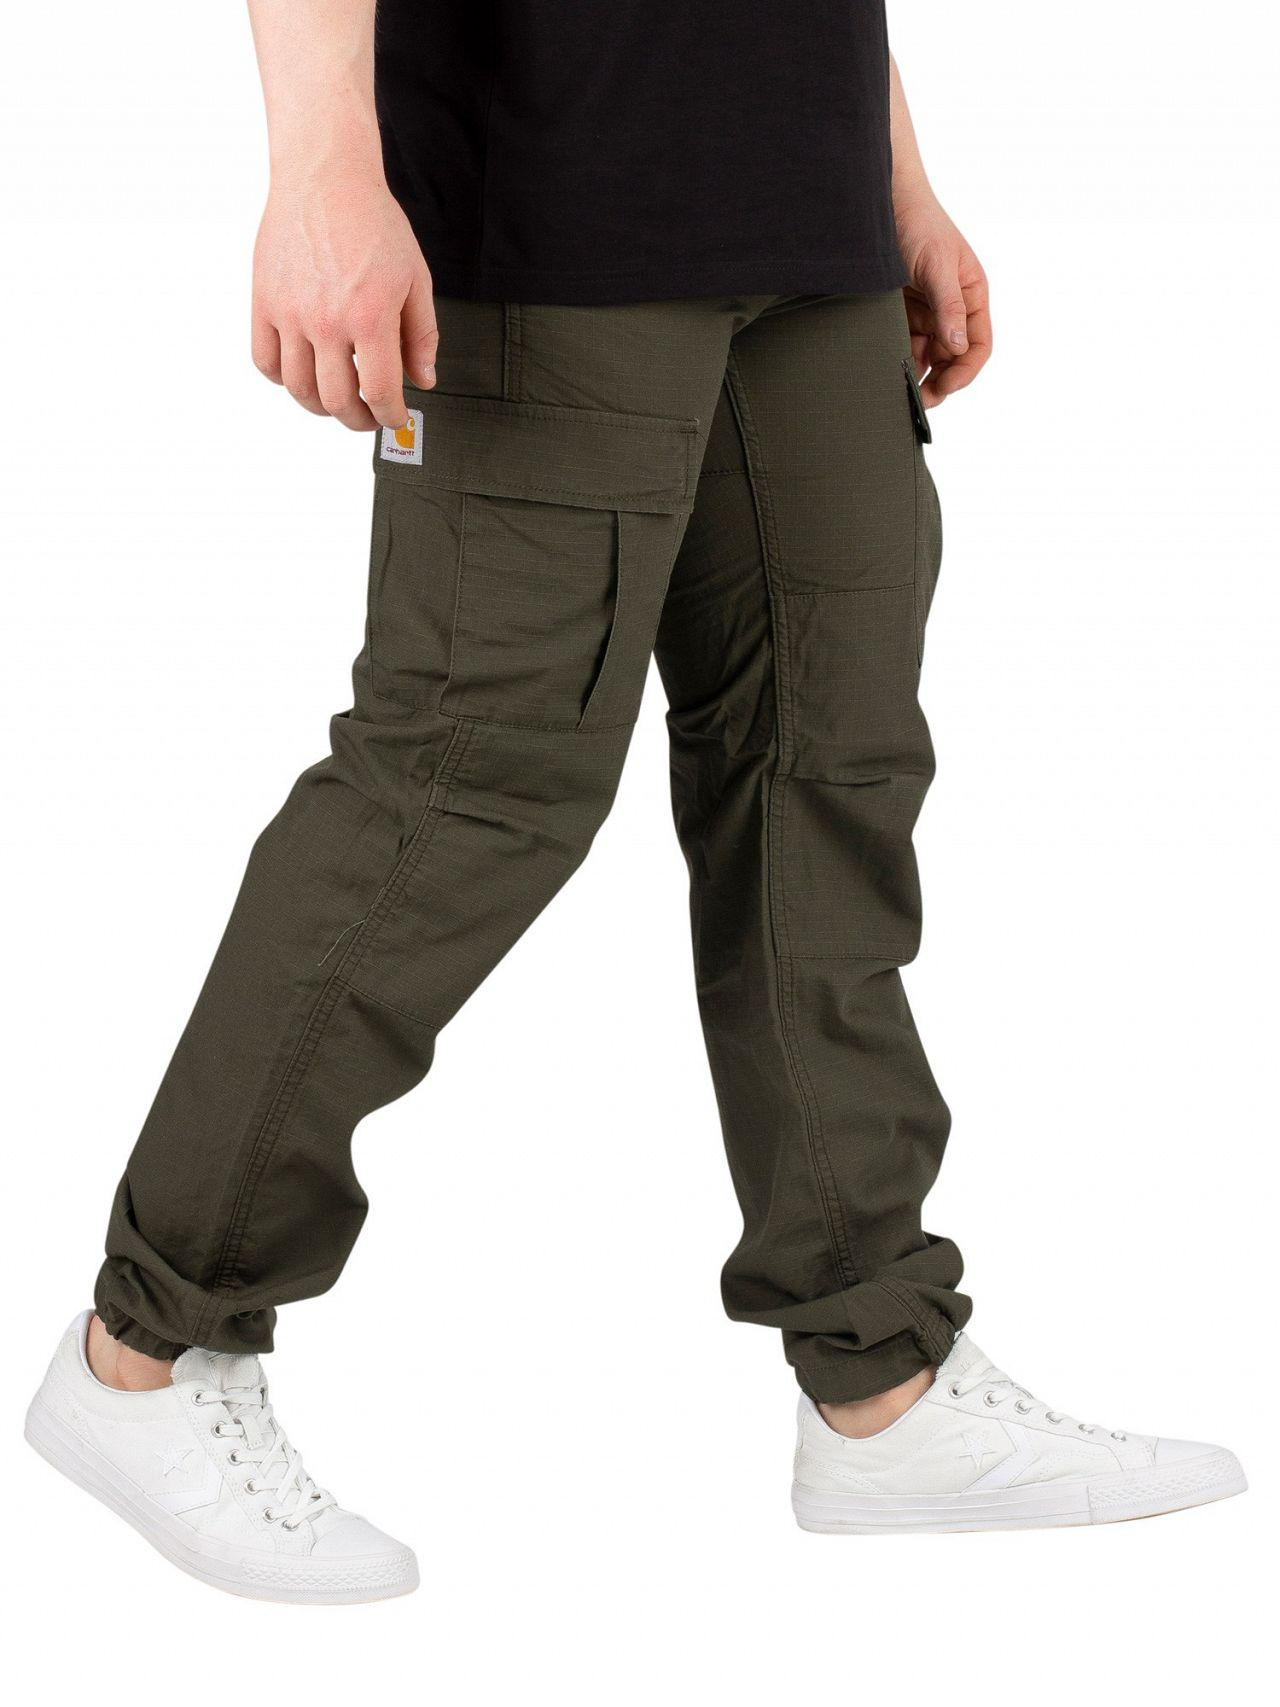 cheap for sale best quality reasonable price Rinsed Aviation Slim Fit Cargos